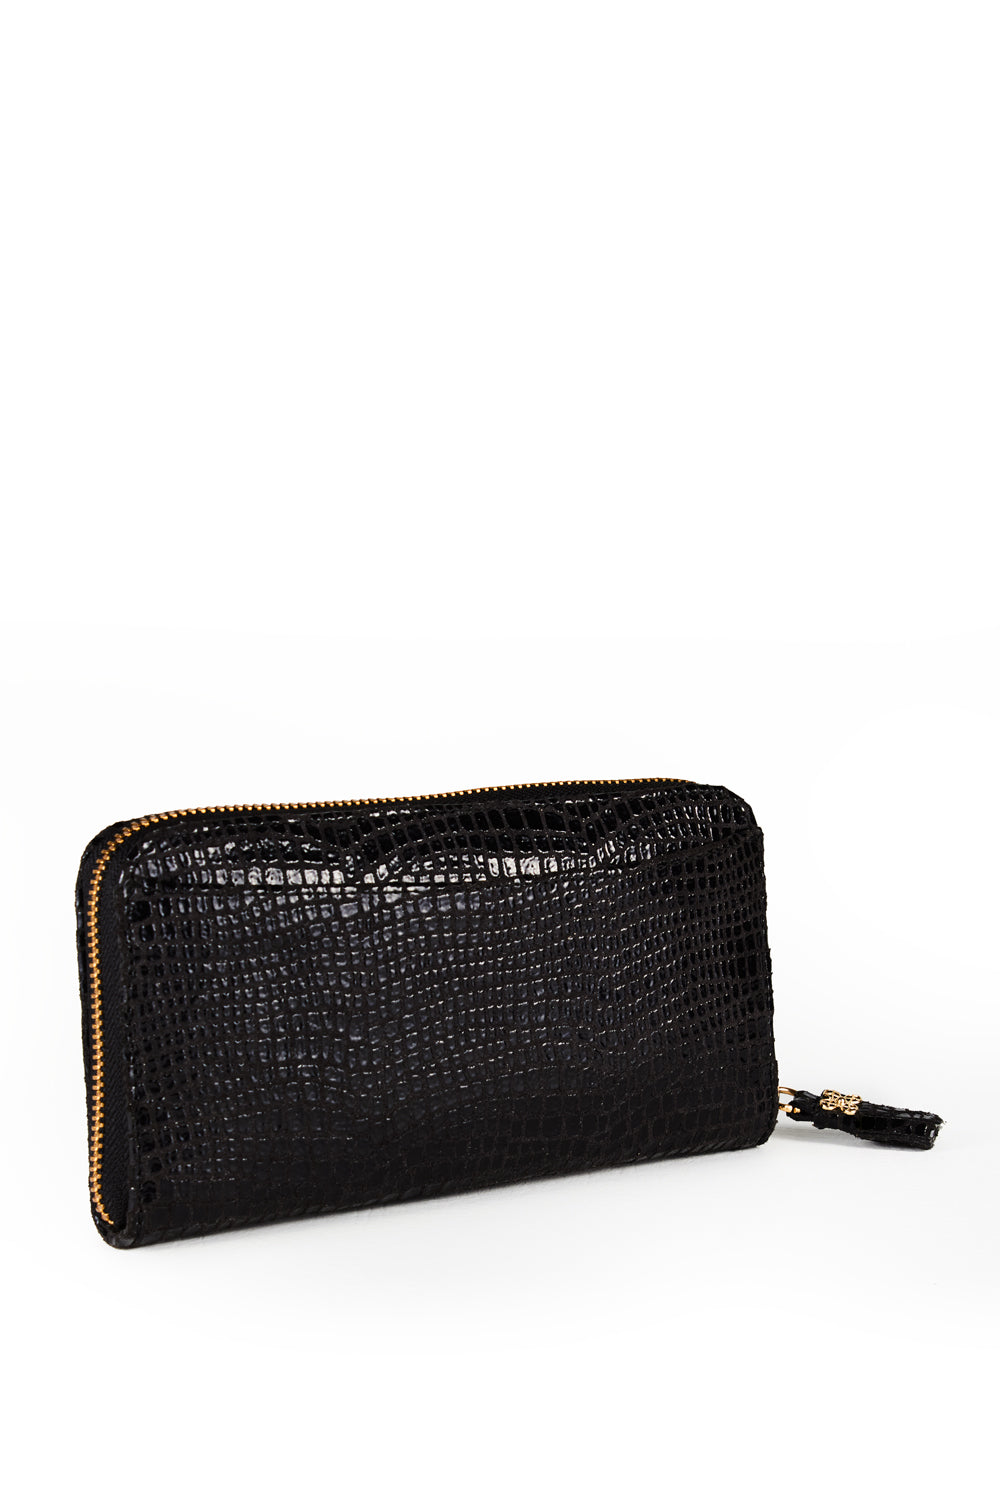 Mel Boteri | High Gloss, Black Lizard-Print Leather 'Maddox' Wallet | Side View